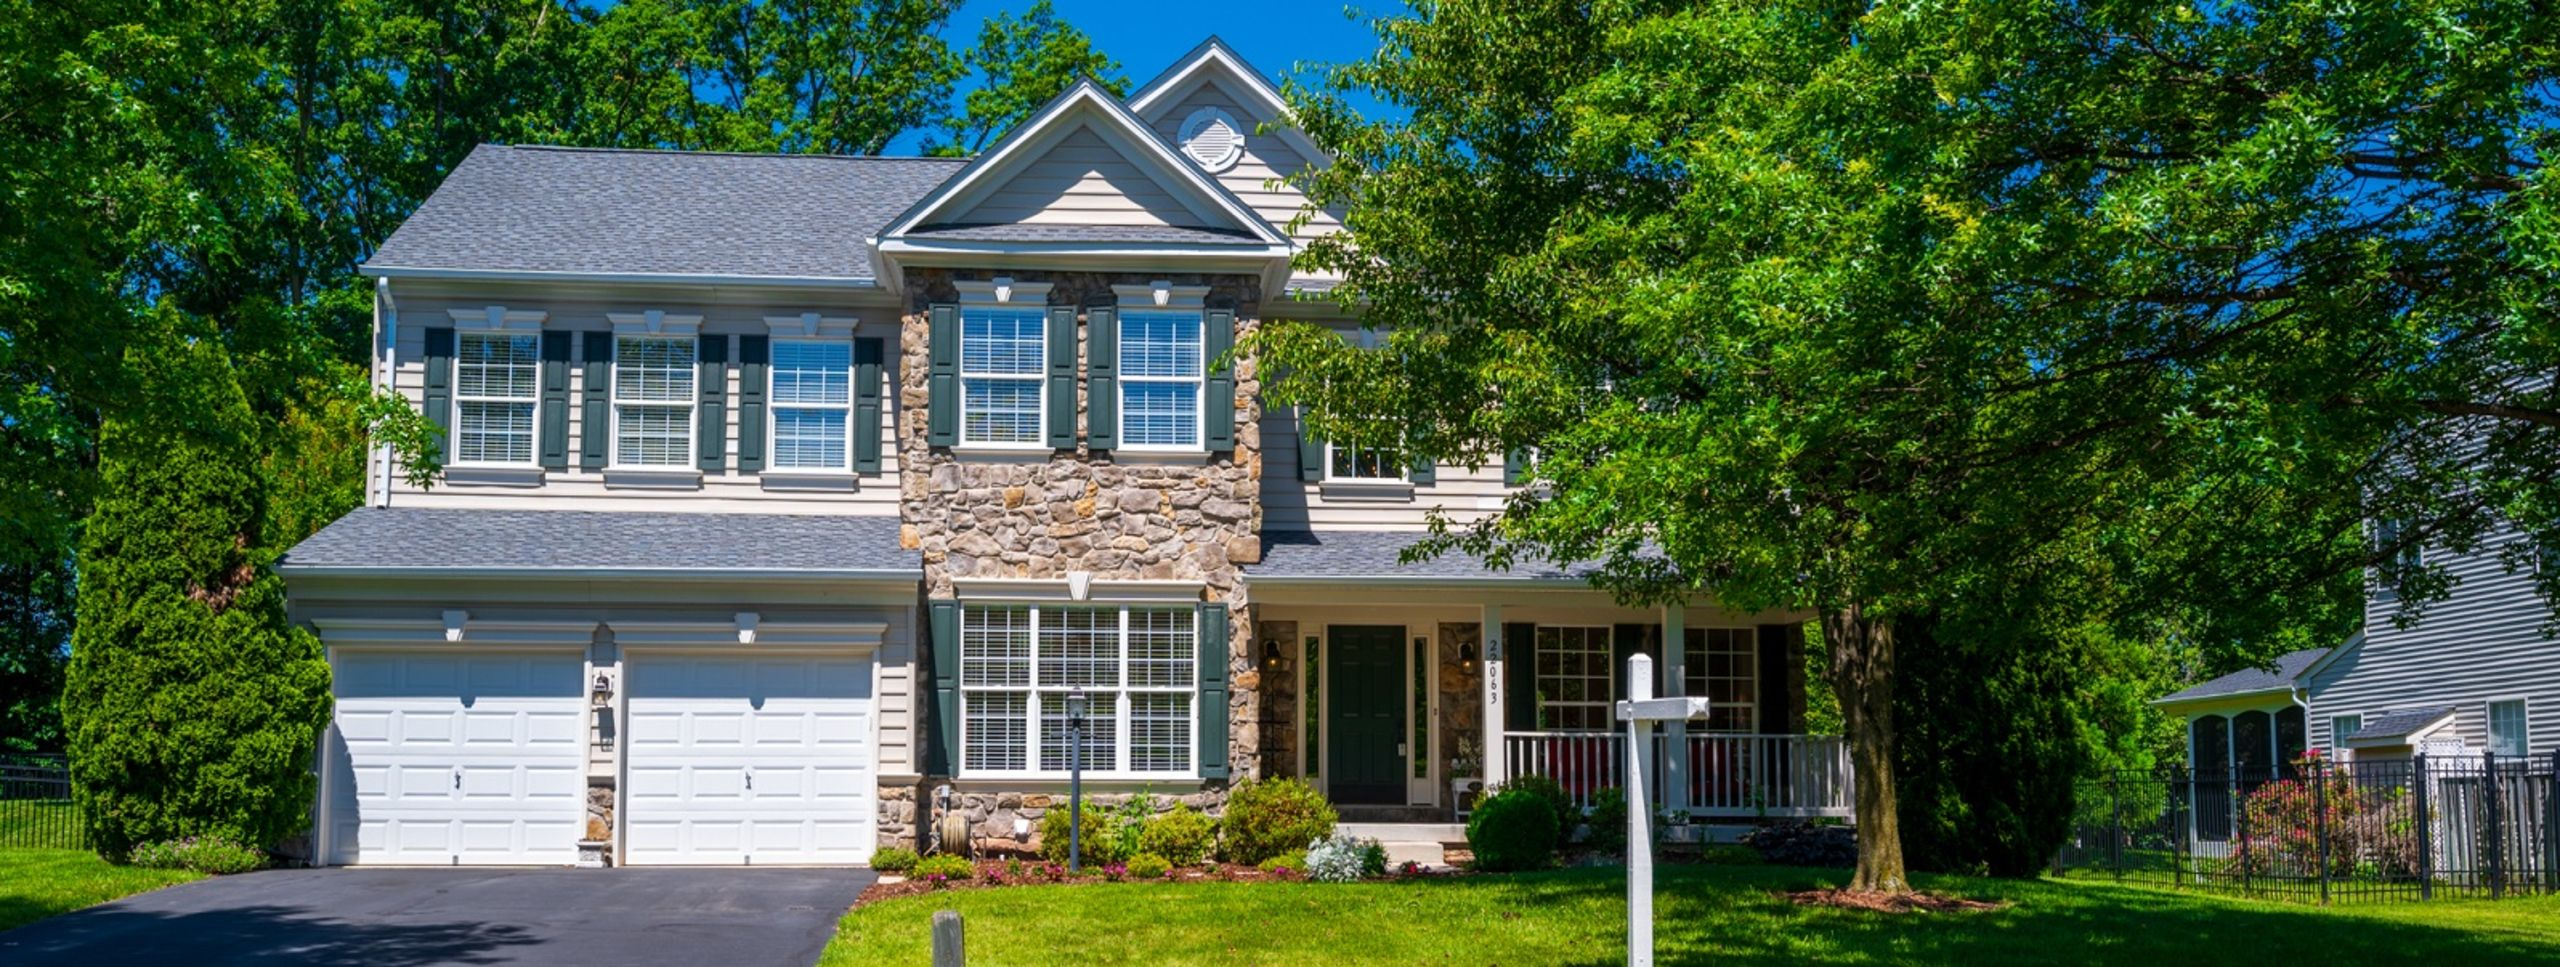 The # 1 Flat Fee Home Sales Service in Northern Virginia